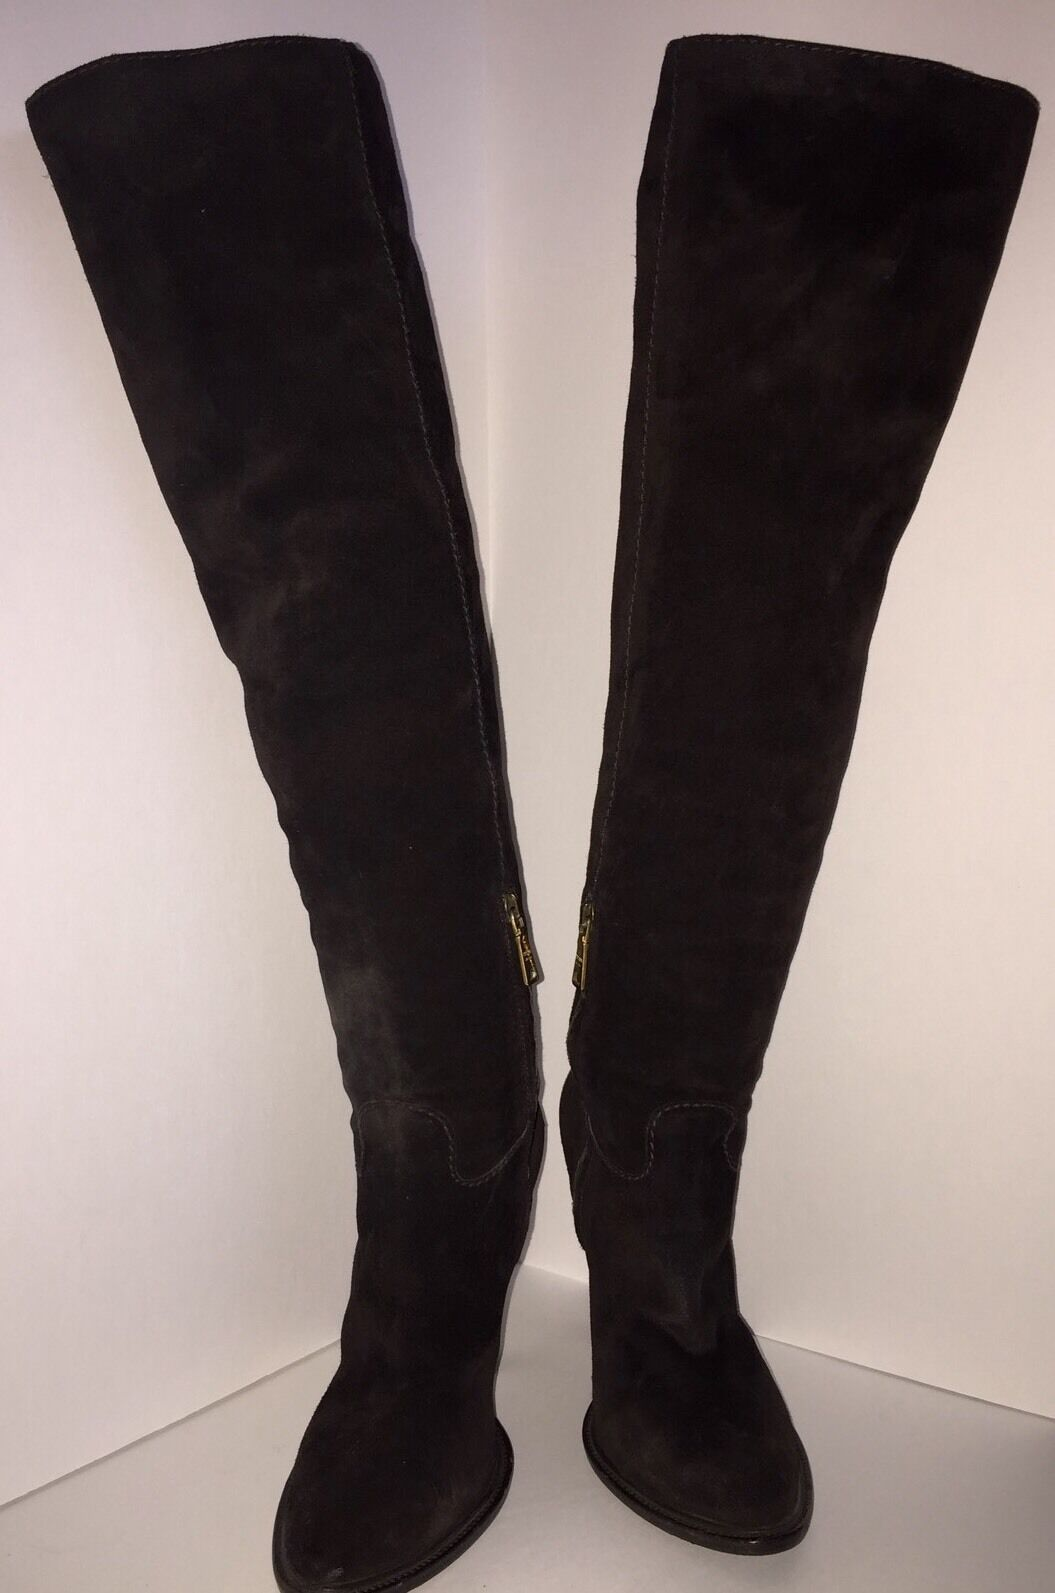 PRADA Chocolate Brown Suede Knee High Tall Boots SZ 38.5 Pre-owned